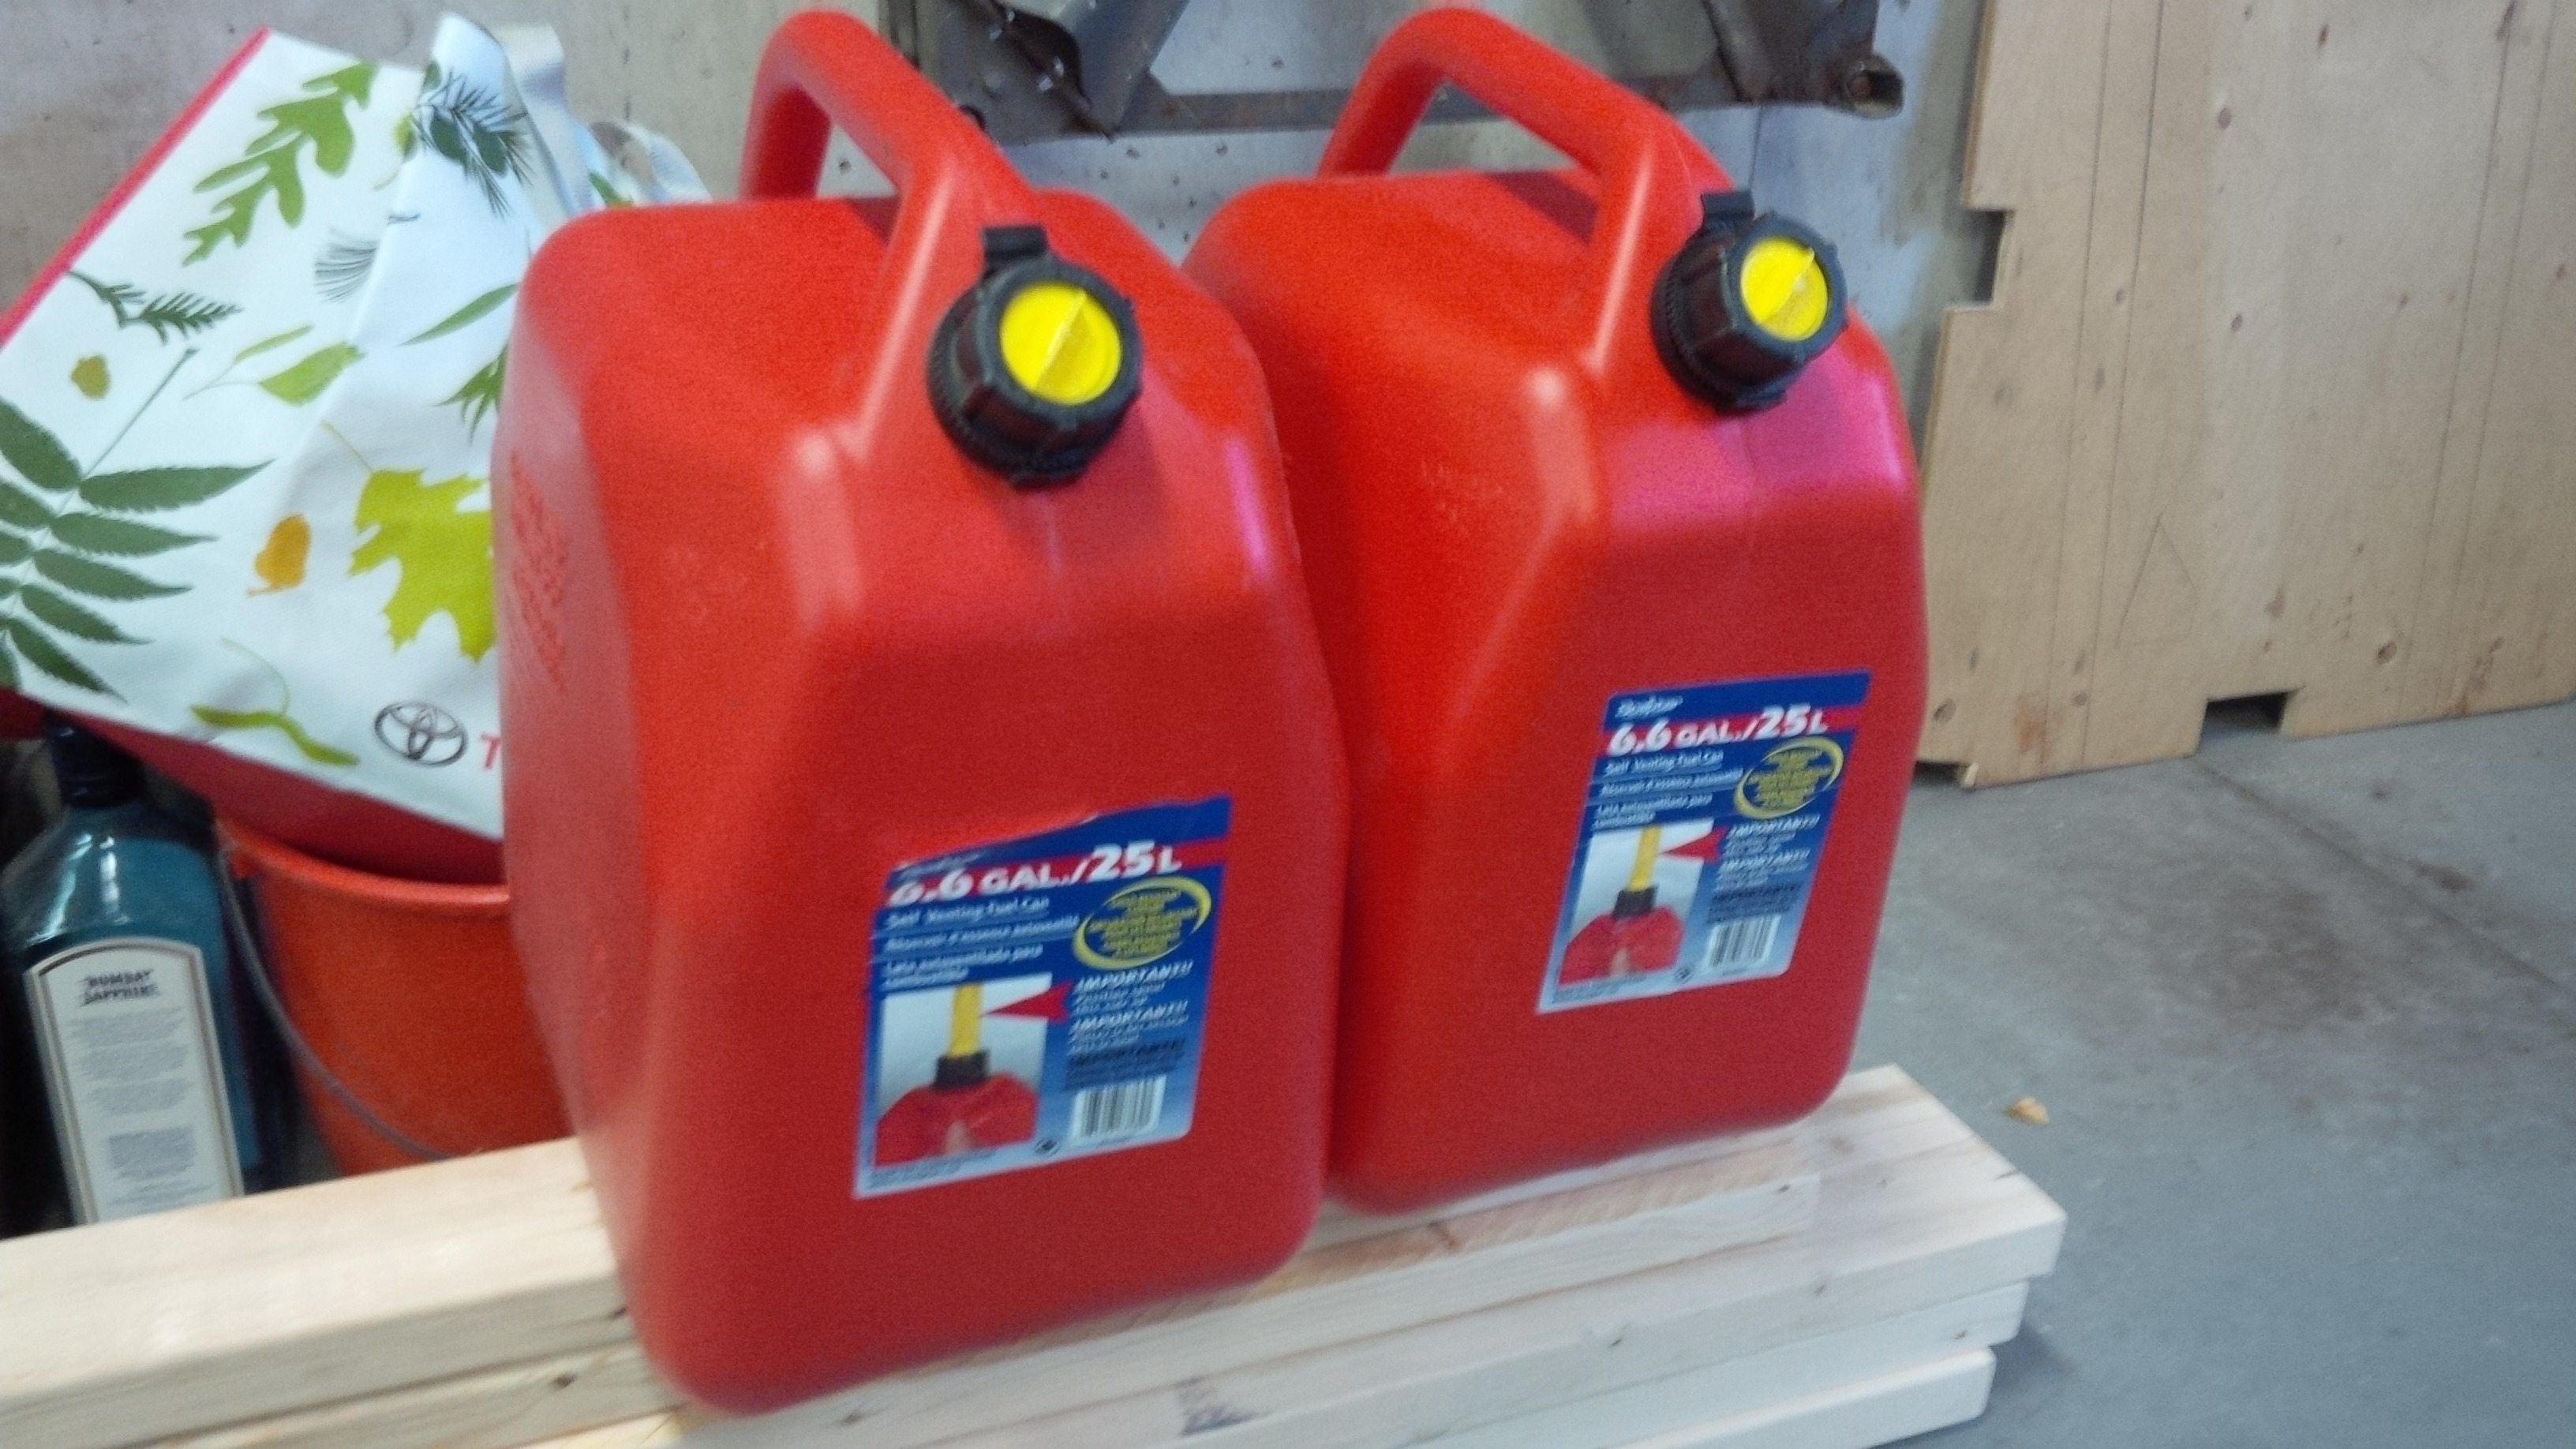 TRADE two almost new 25L gas cans for two yellow Diesel fuel cans